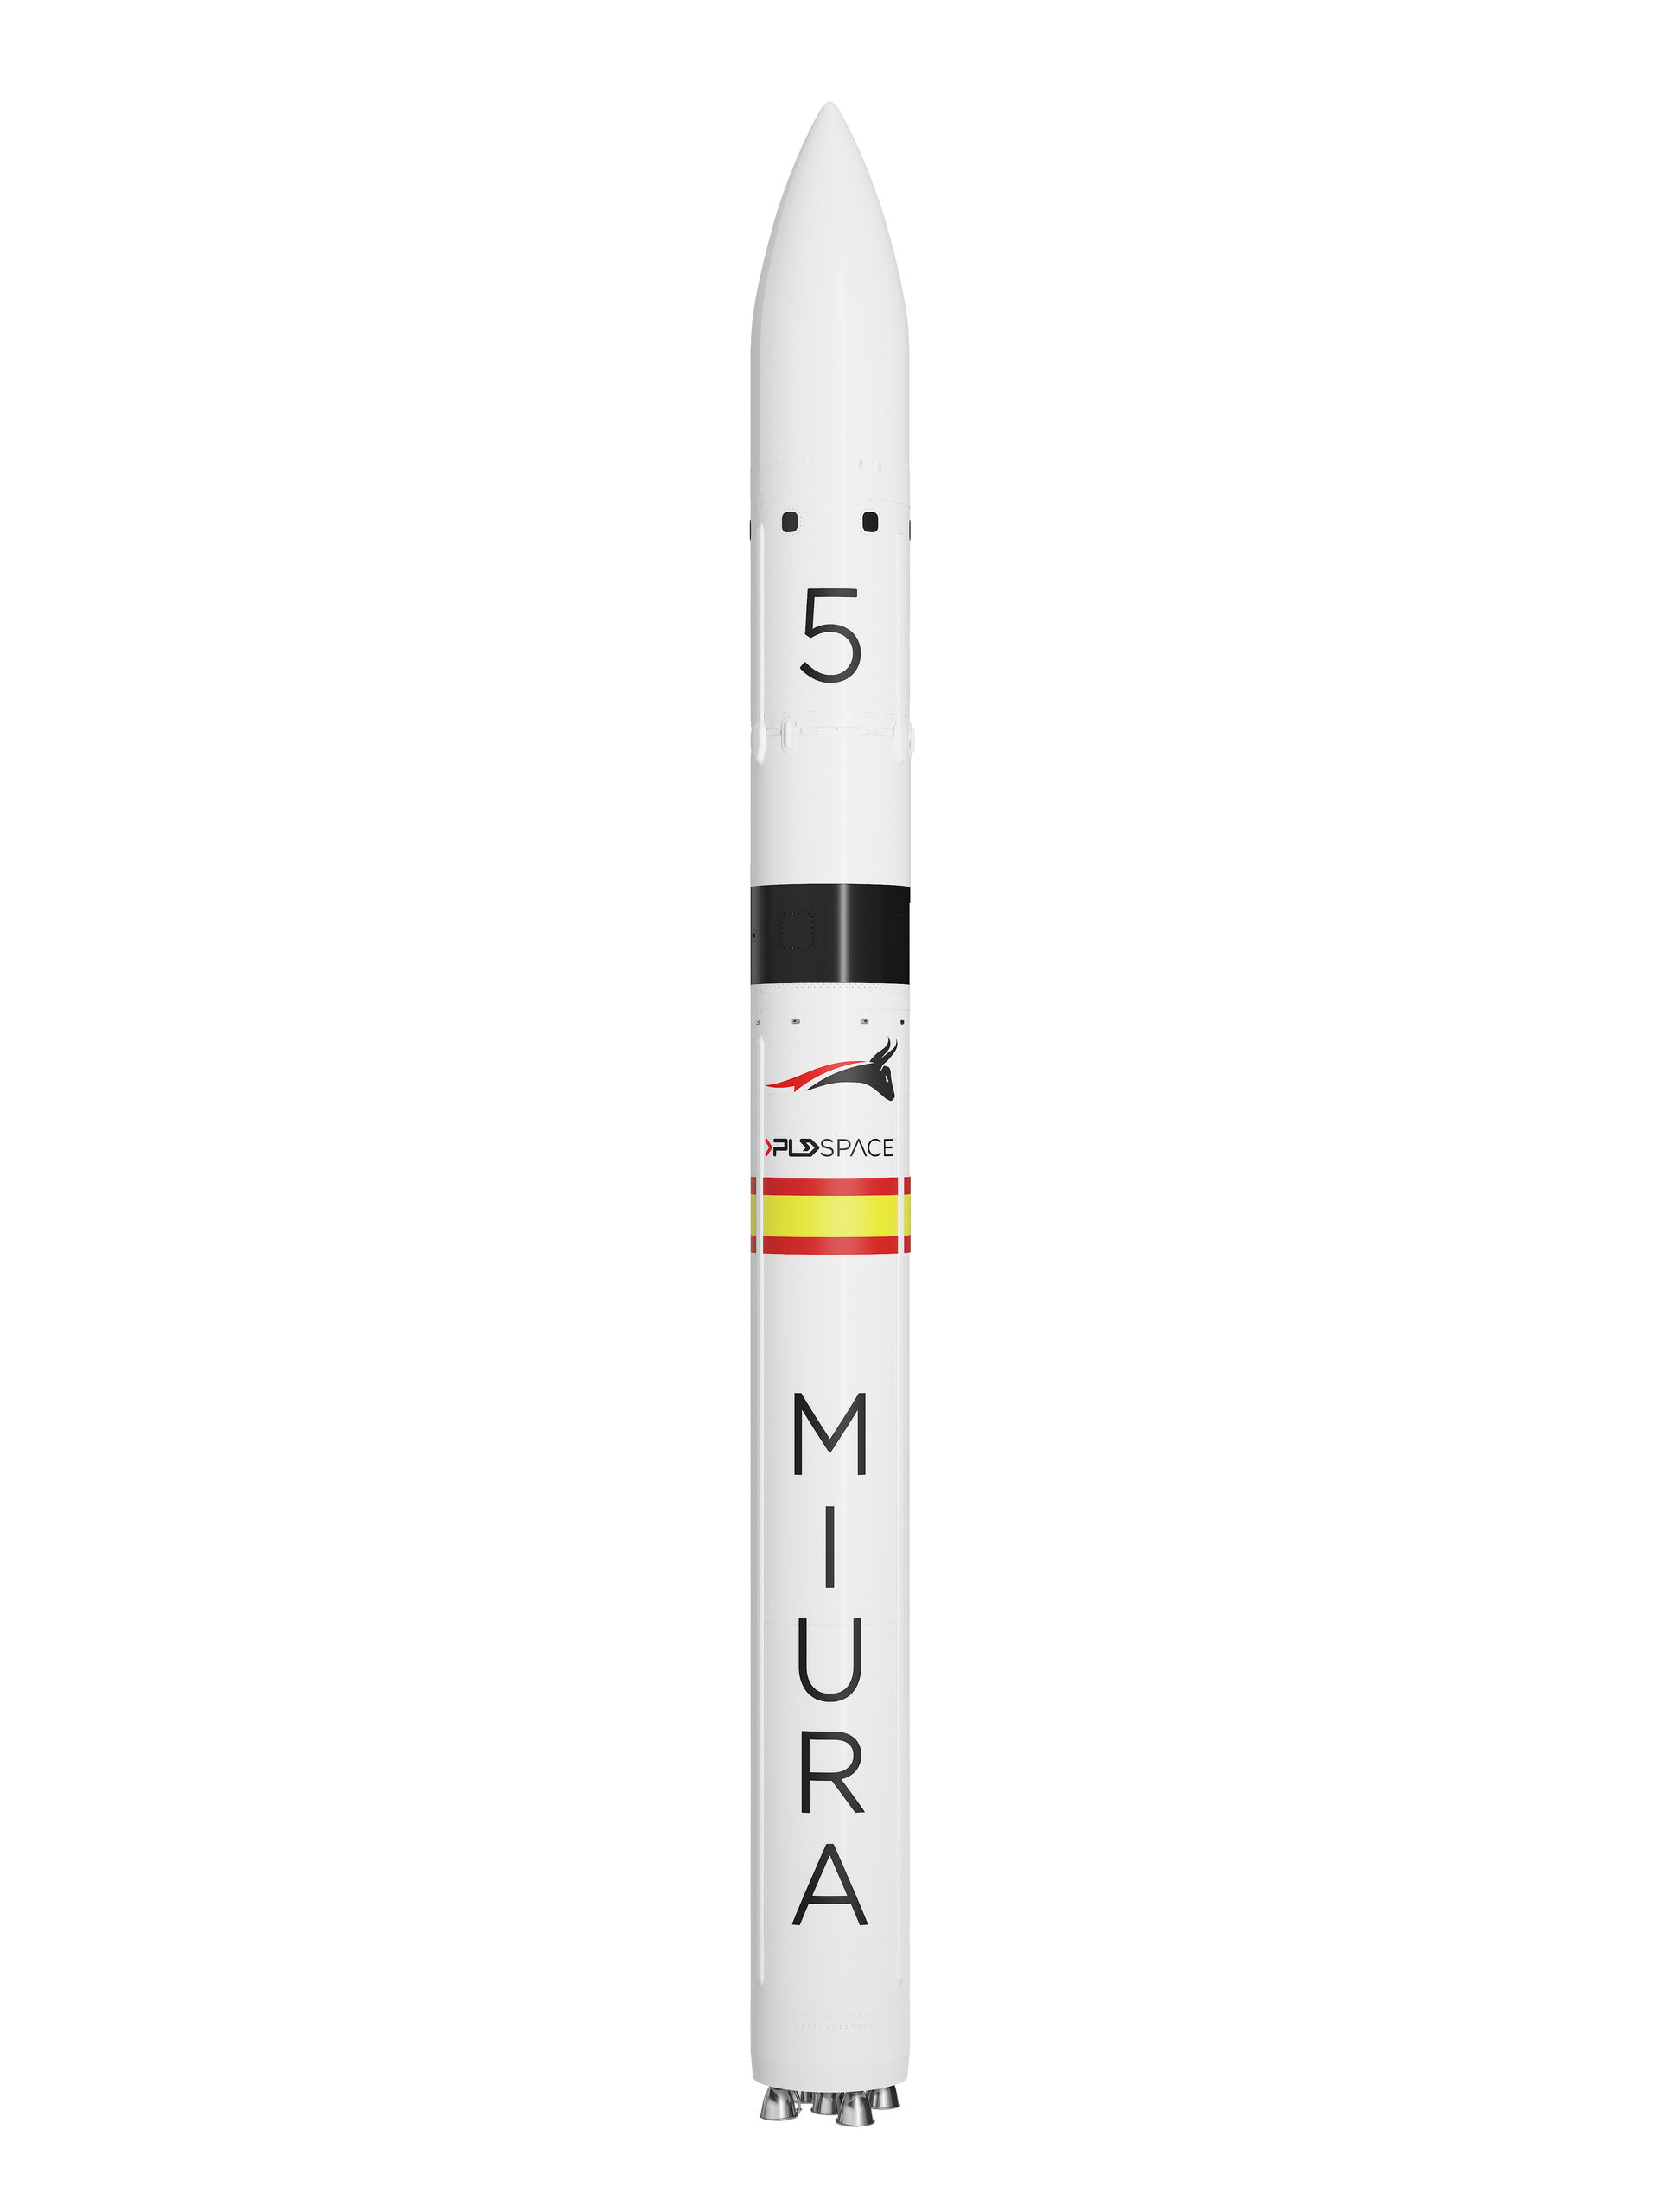 Miura 5 dedicated launches for small satellites